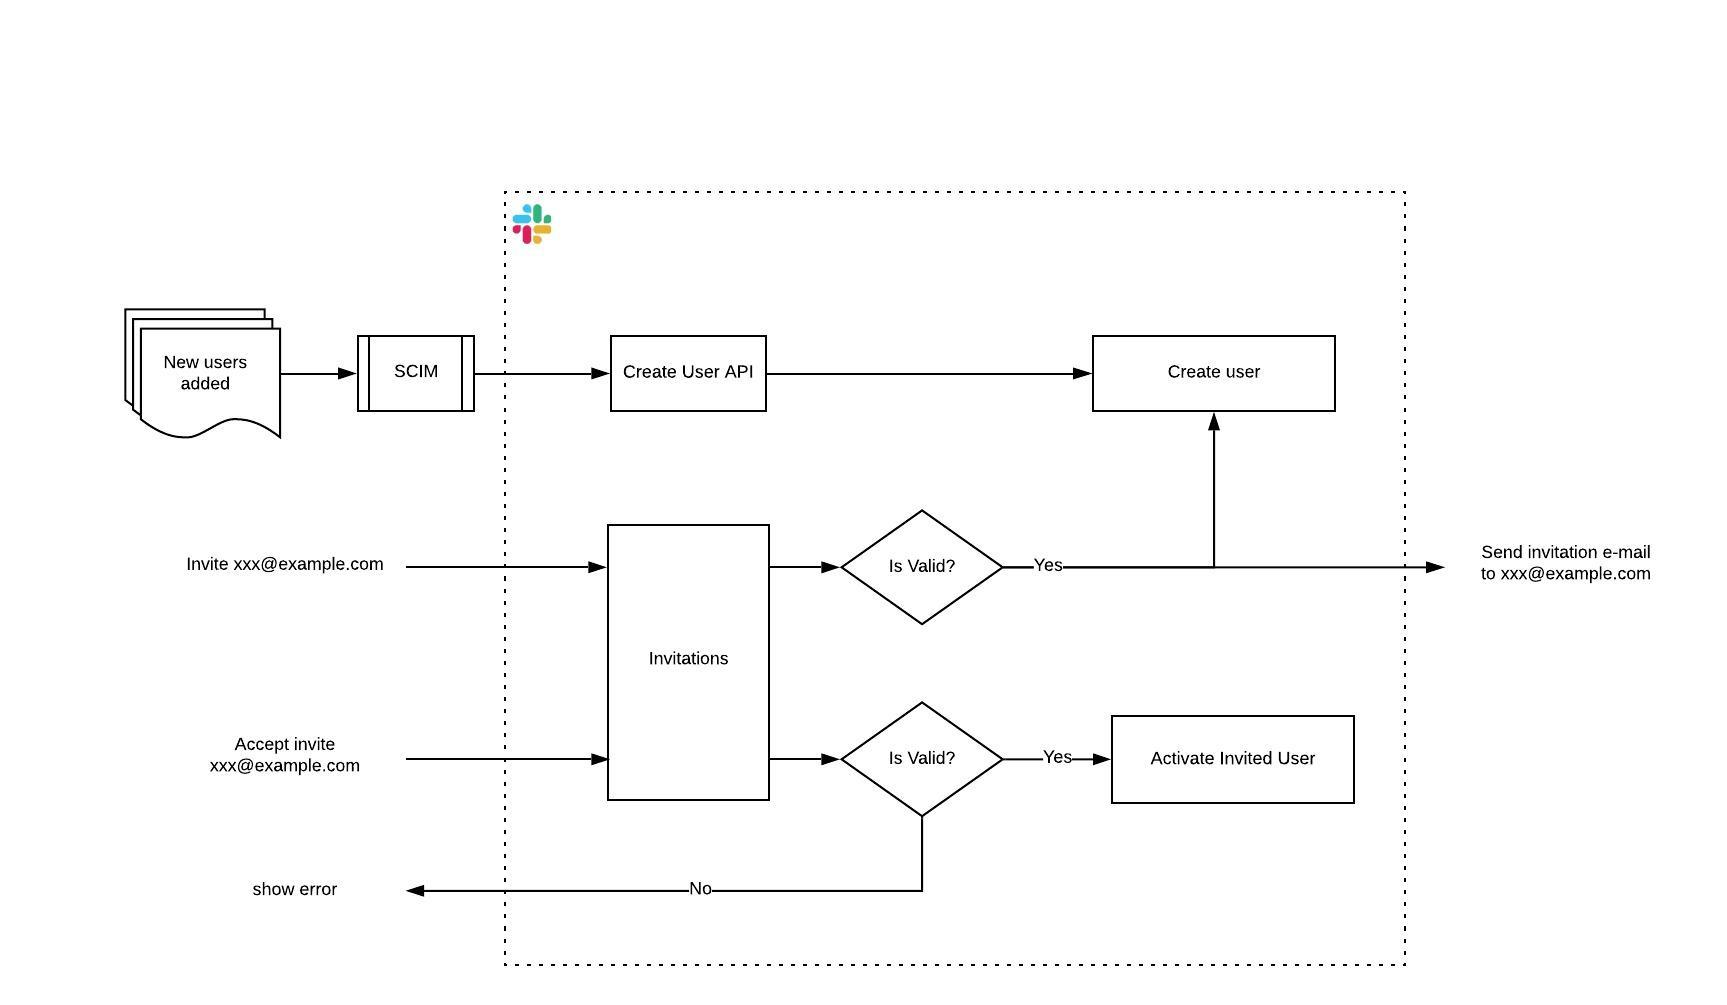 Flow chart showing the invitation flow with Email Bridge